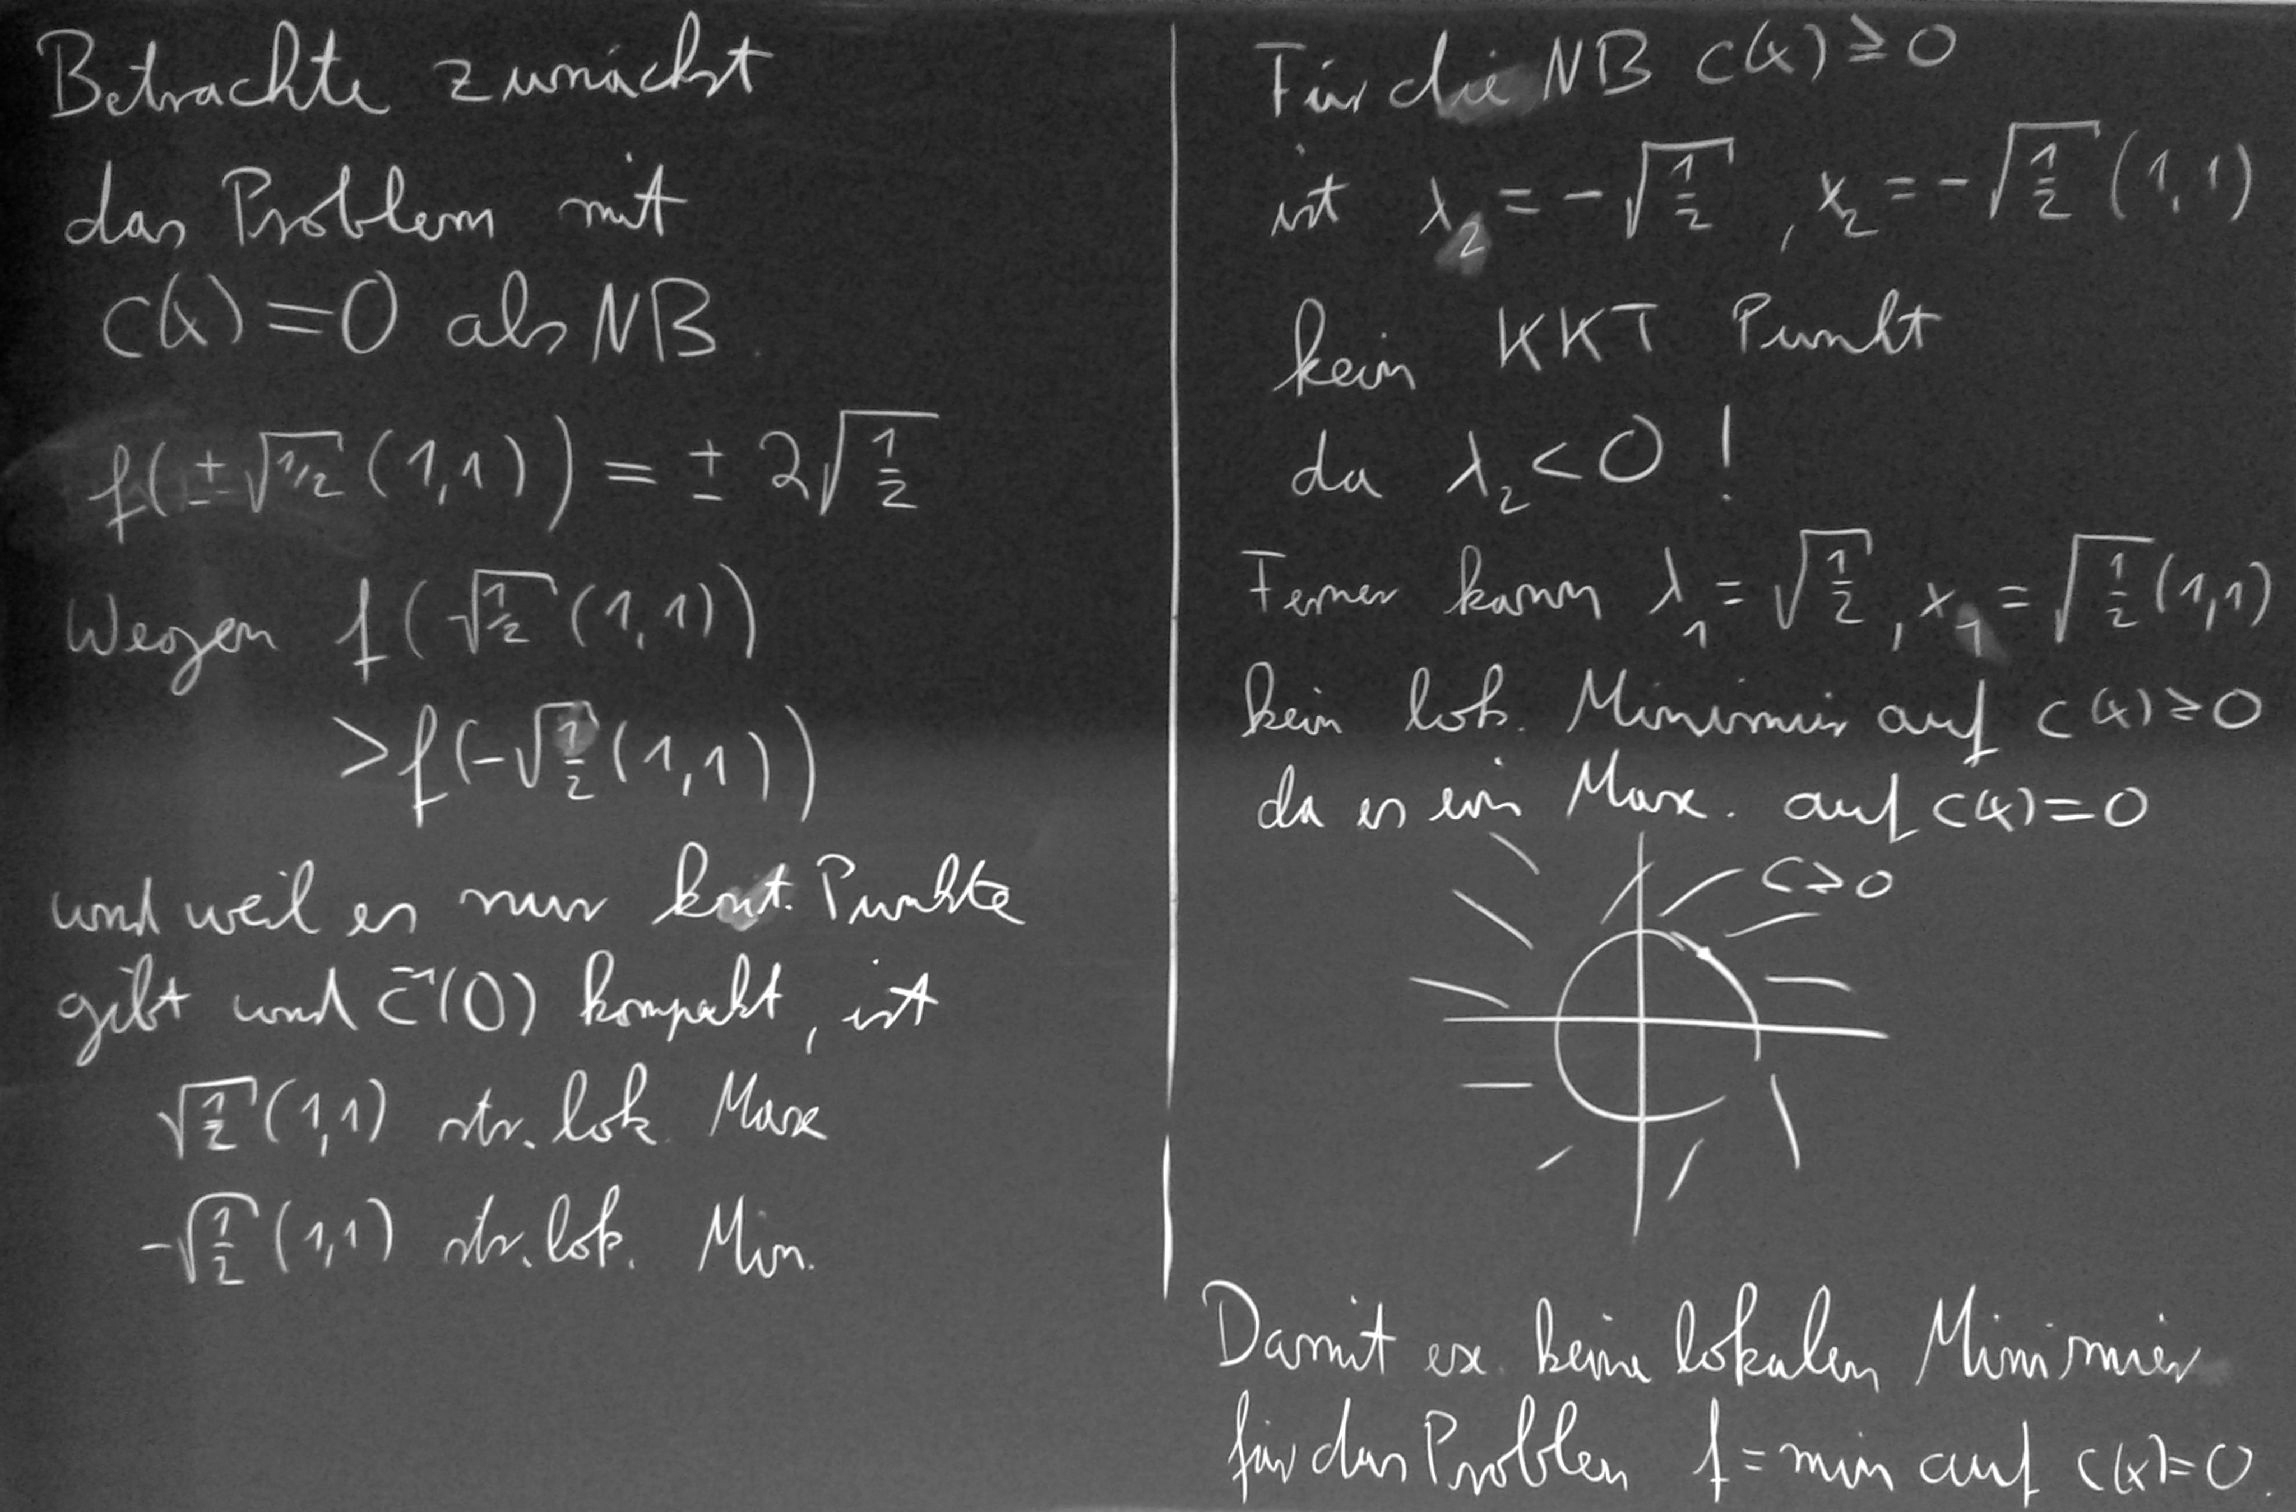 Programming exercises for mathematical image processing